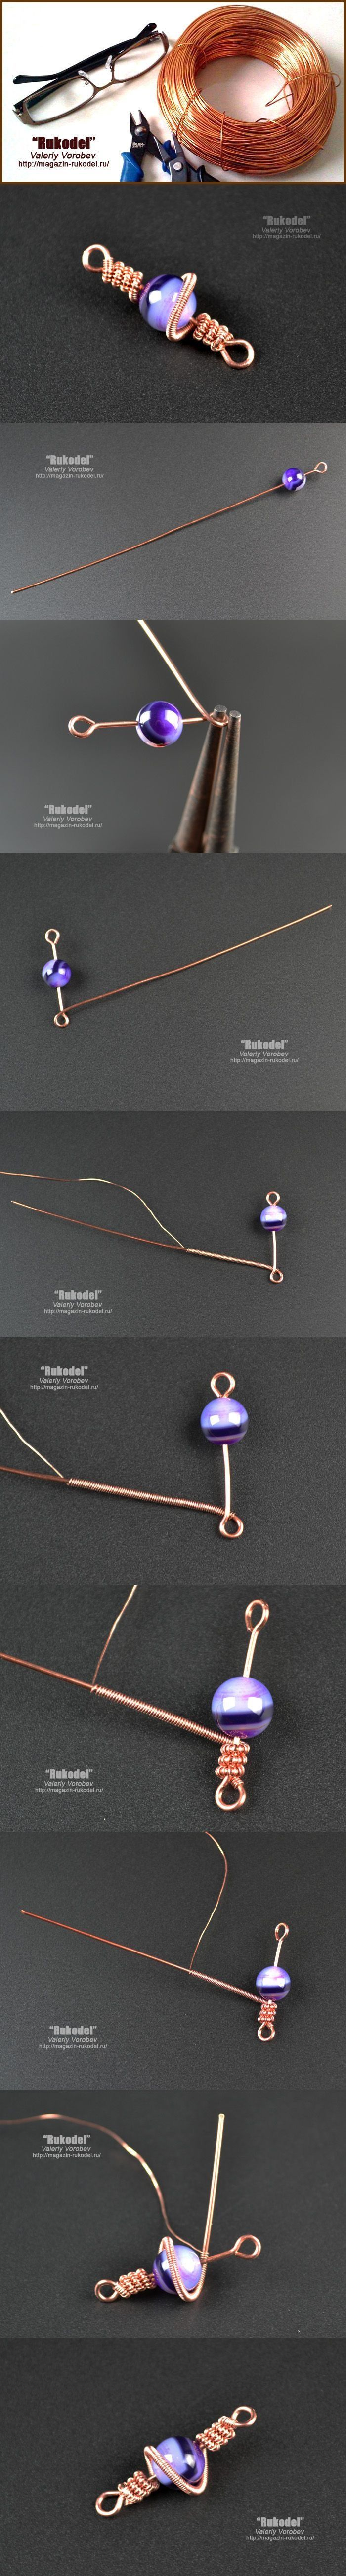 369 best World of Wire Jewelry images on Pinterest   Wire jewelry ...